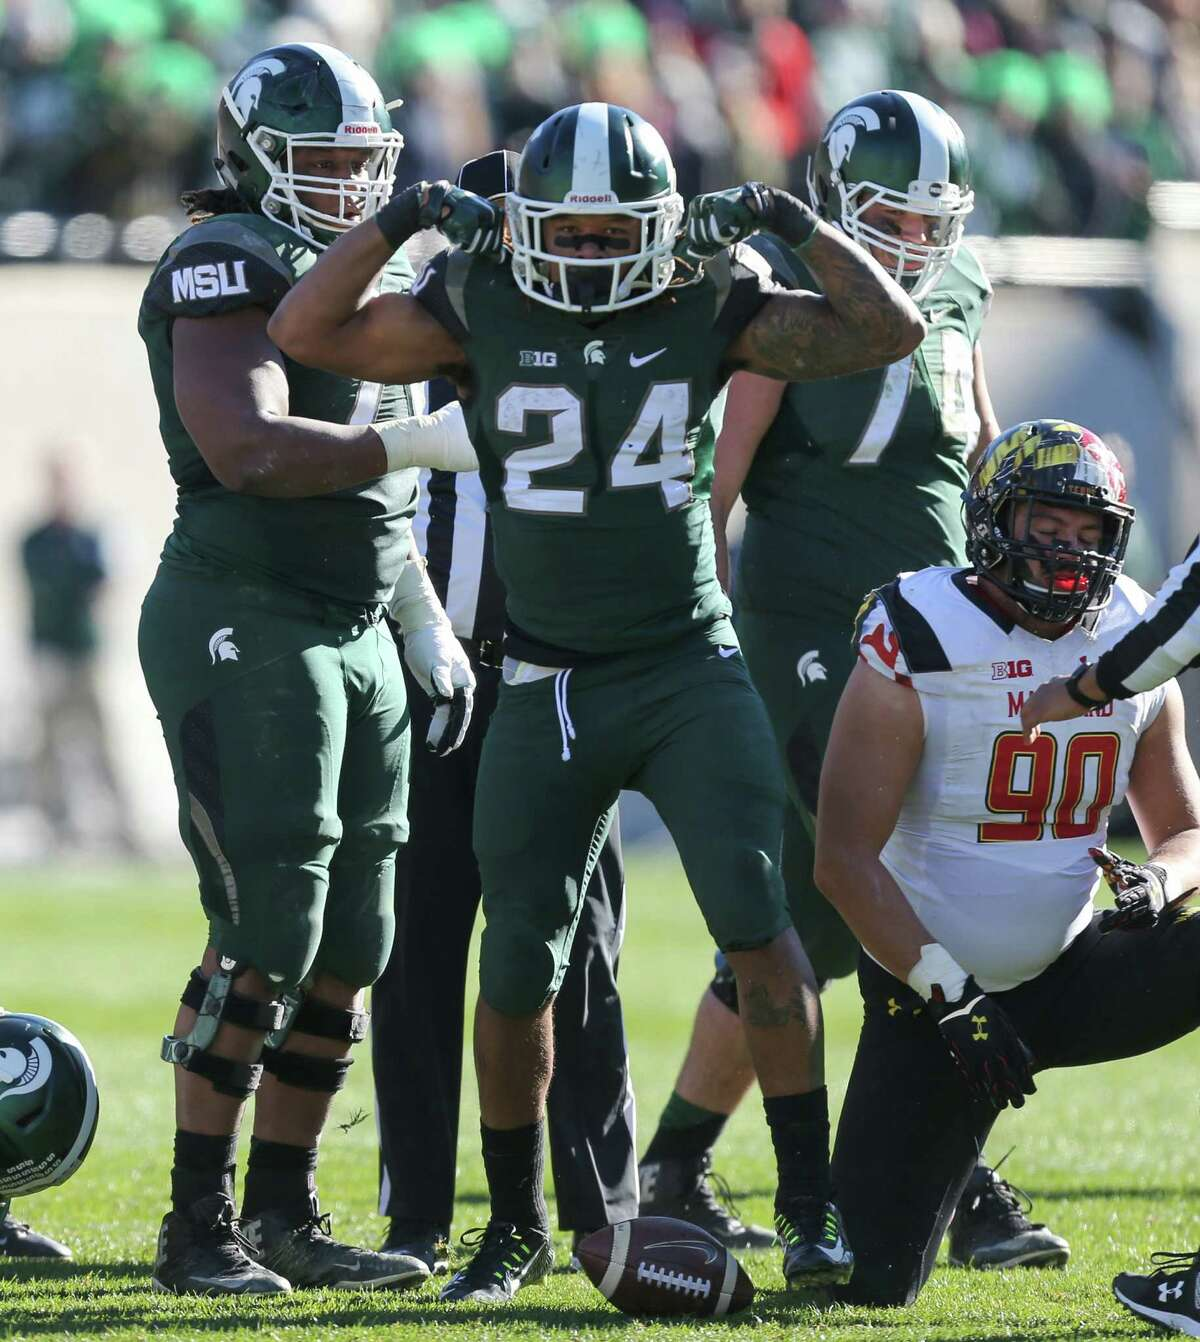 9.Michigan State (9-1) Remaining games: at No. 3 Ohio State (Saturday), vs. Penn State (Nov. 28), tentative Big Ten Championship Game (Dec. 5) Officially, the Spartans have just one loss, but we all know they actually lost to Michigan last month. If the Michigan punter didn't have a brain cramp, Michigan State would be 8-2 with no shot of the playoff. Oh, and that one actual loss? It was against a Nebraska team that isn't even going to make a bowl game. Michigan State also beat a lousy Purdue team, 24-21, and a bad Rutgers bunch, 31-24. That's not a team worthy of a College Football Playoff spot.